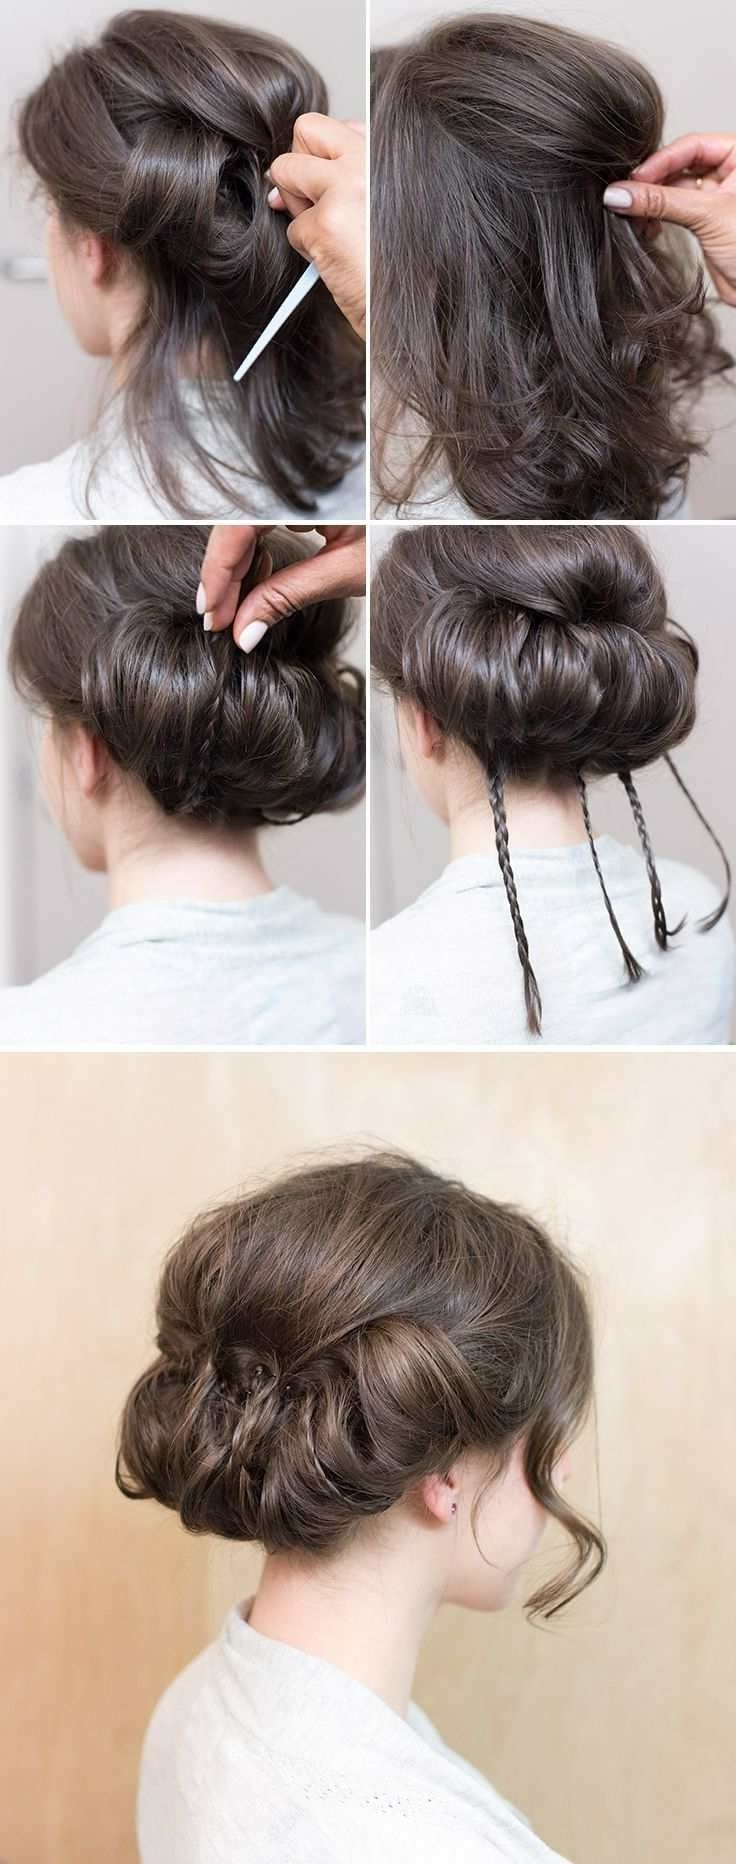 Bridal Hairstyles With Well Known Wedding Hairstyles For Shoulder Length Black Hair (View 15 of 15)